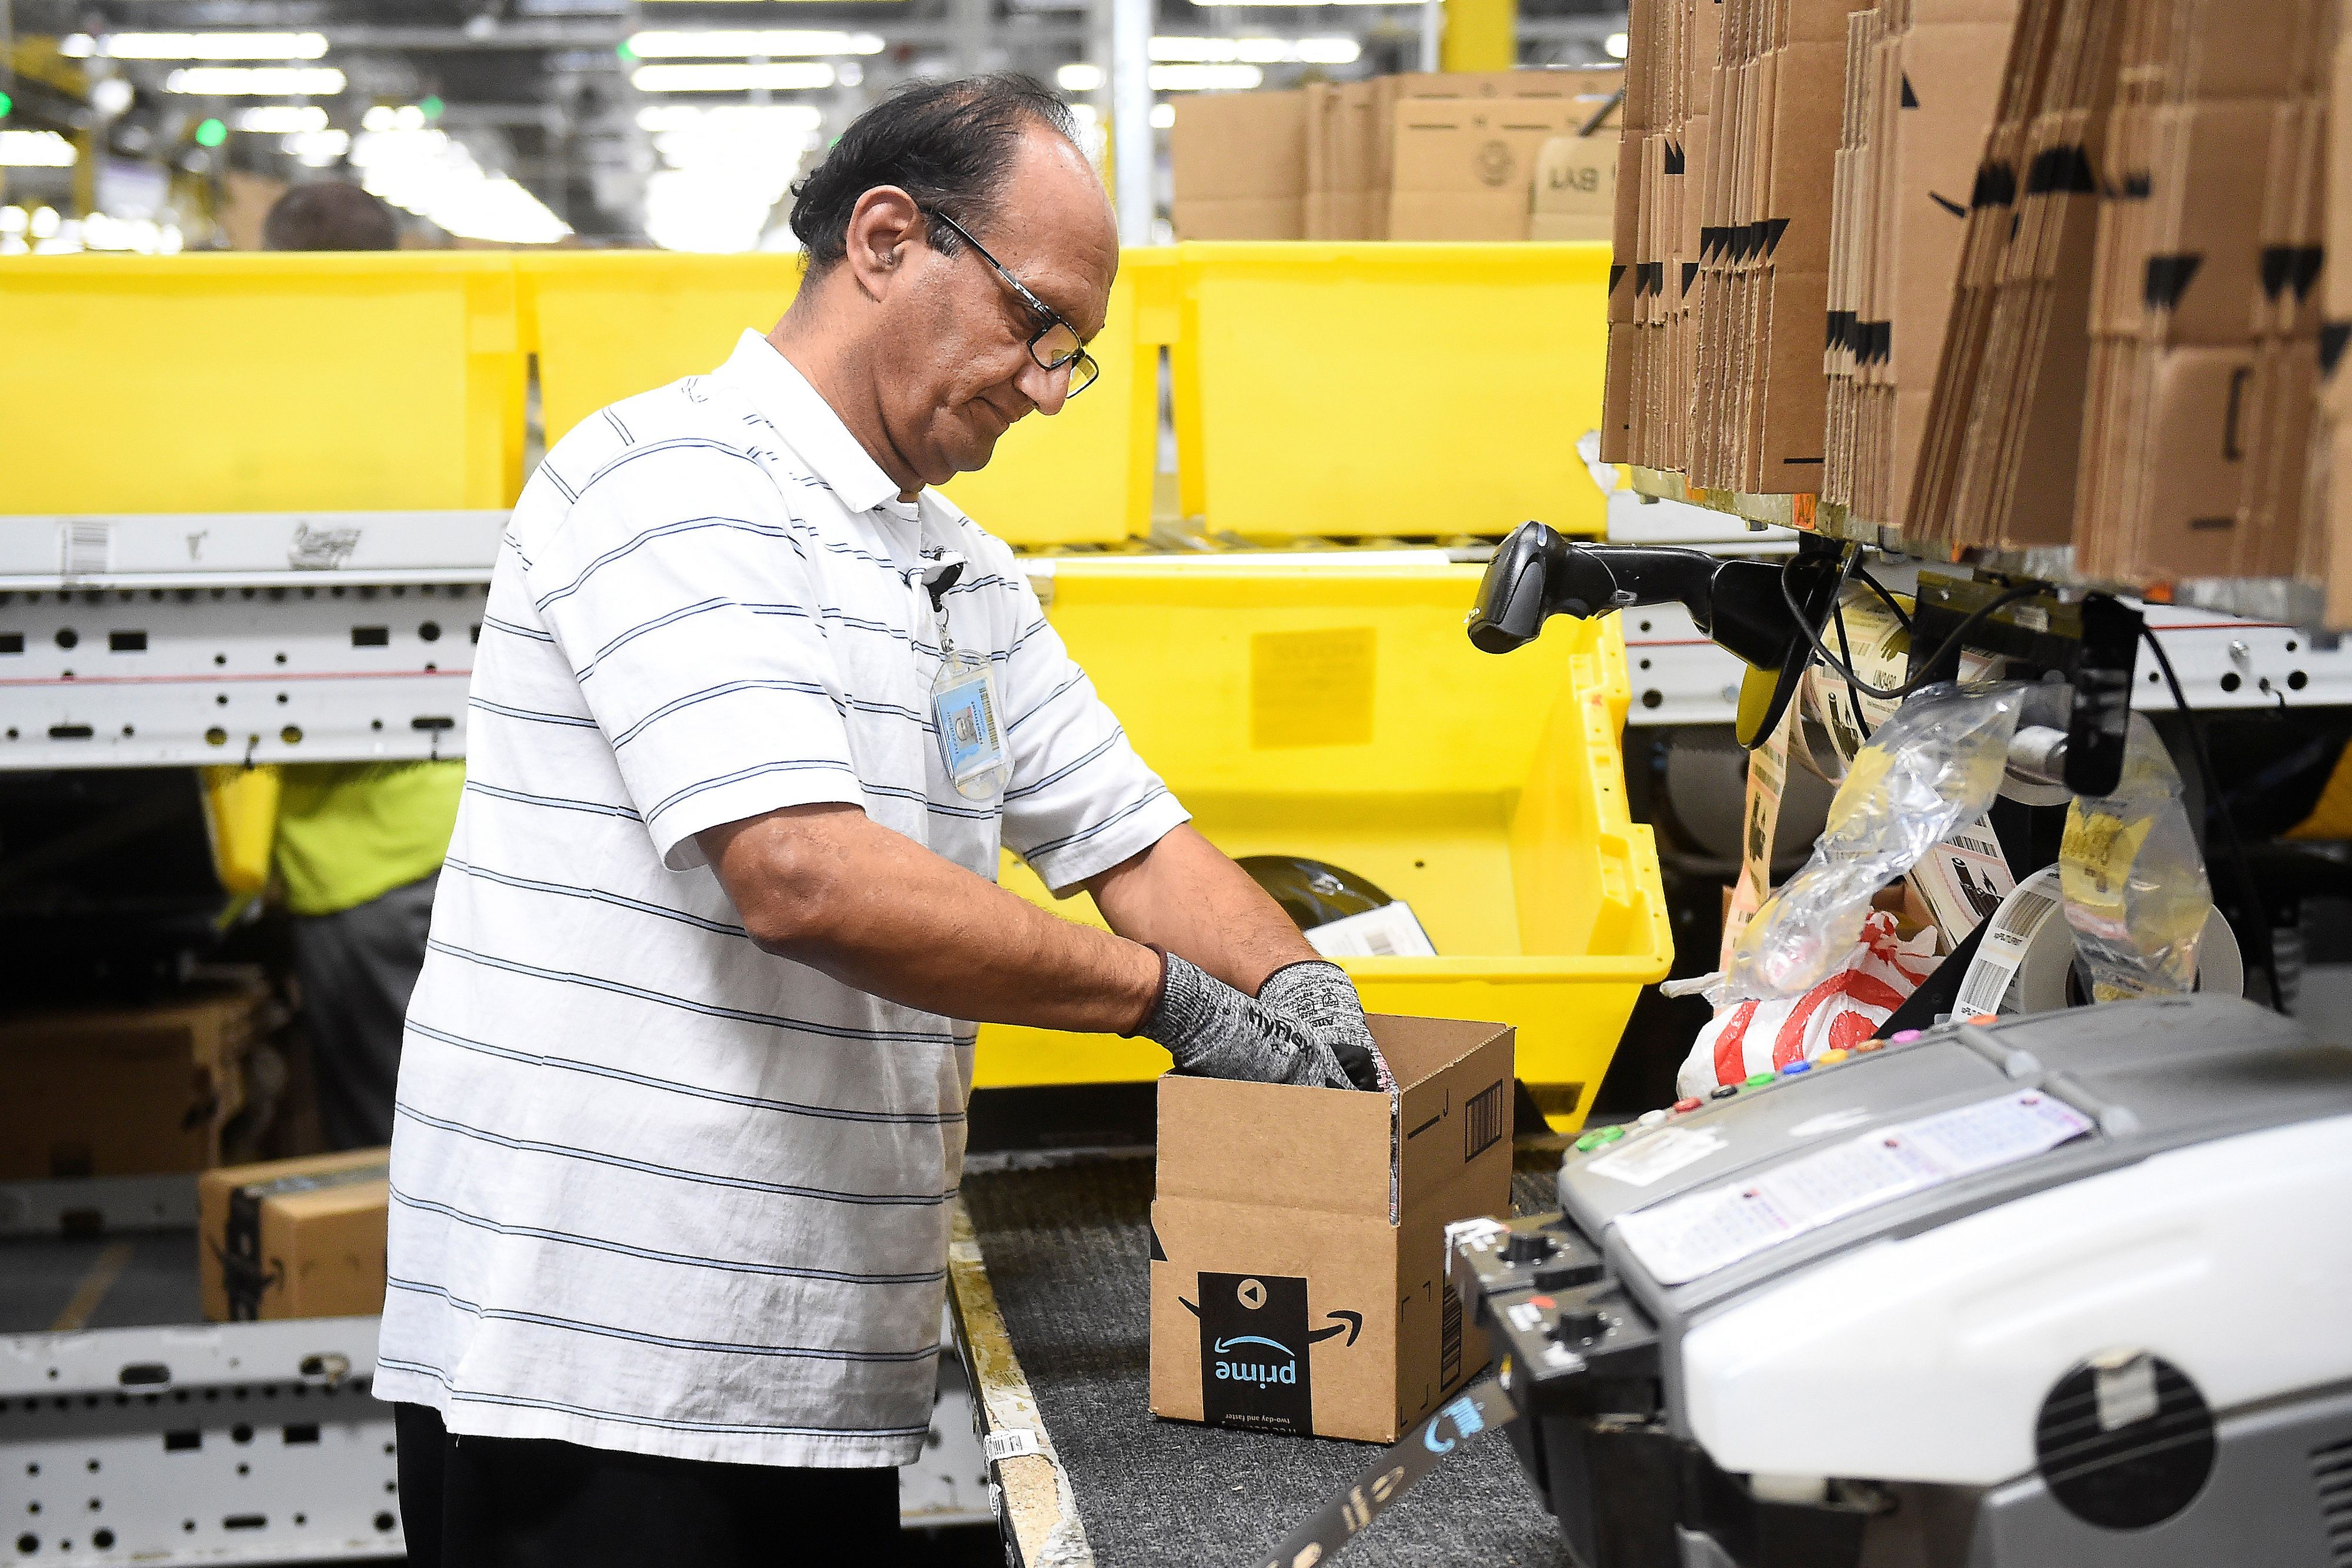 Amazon workers are reportedly planning a Prime Day protest